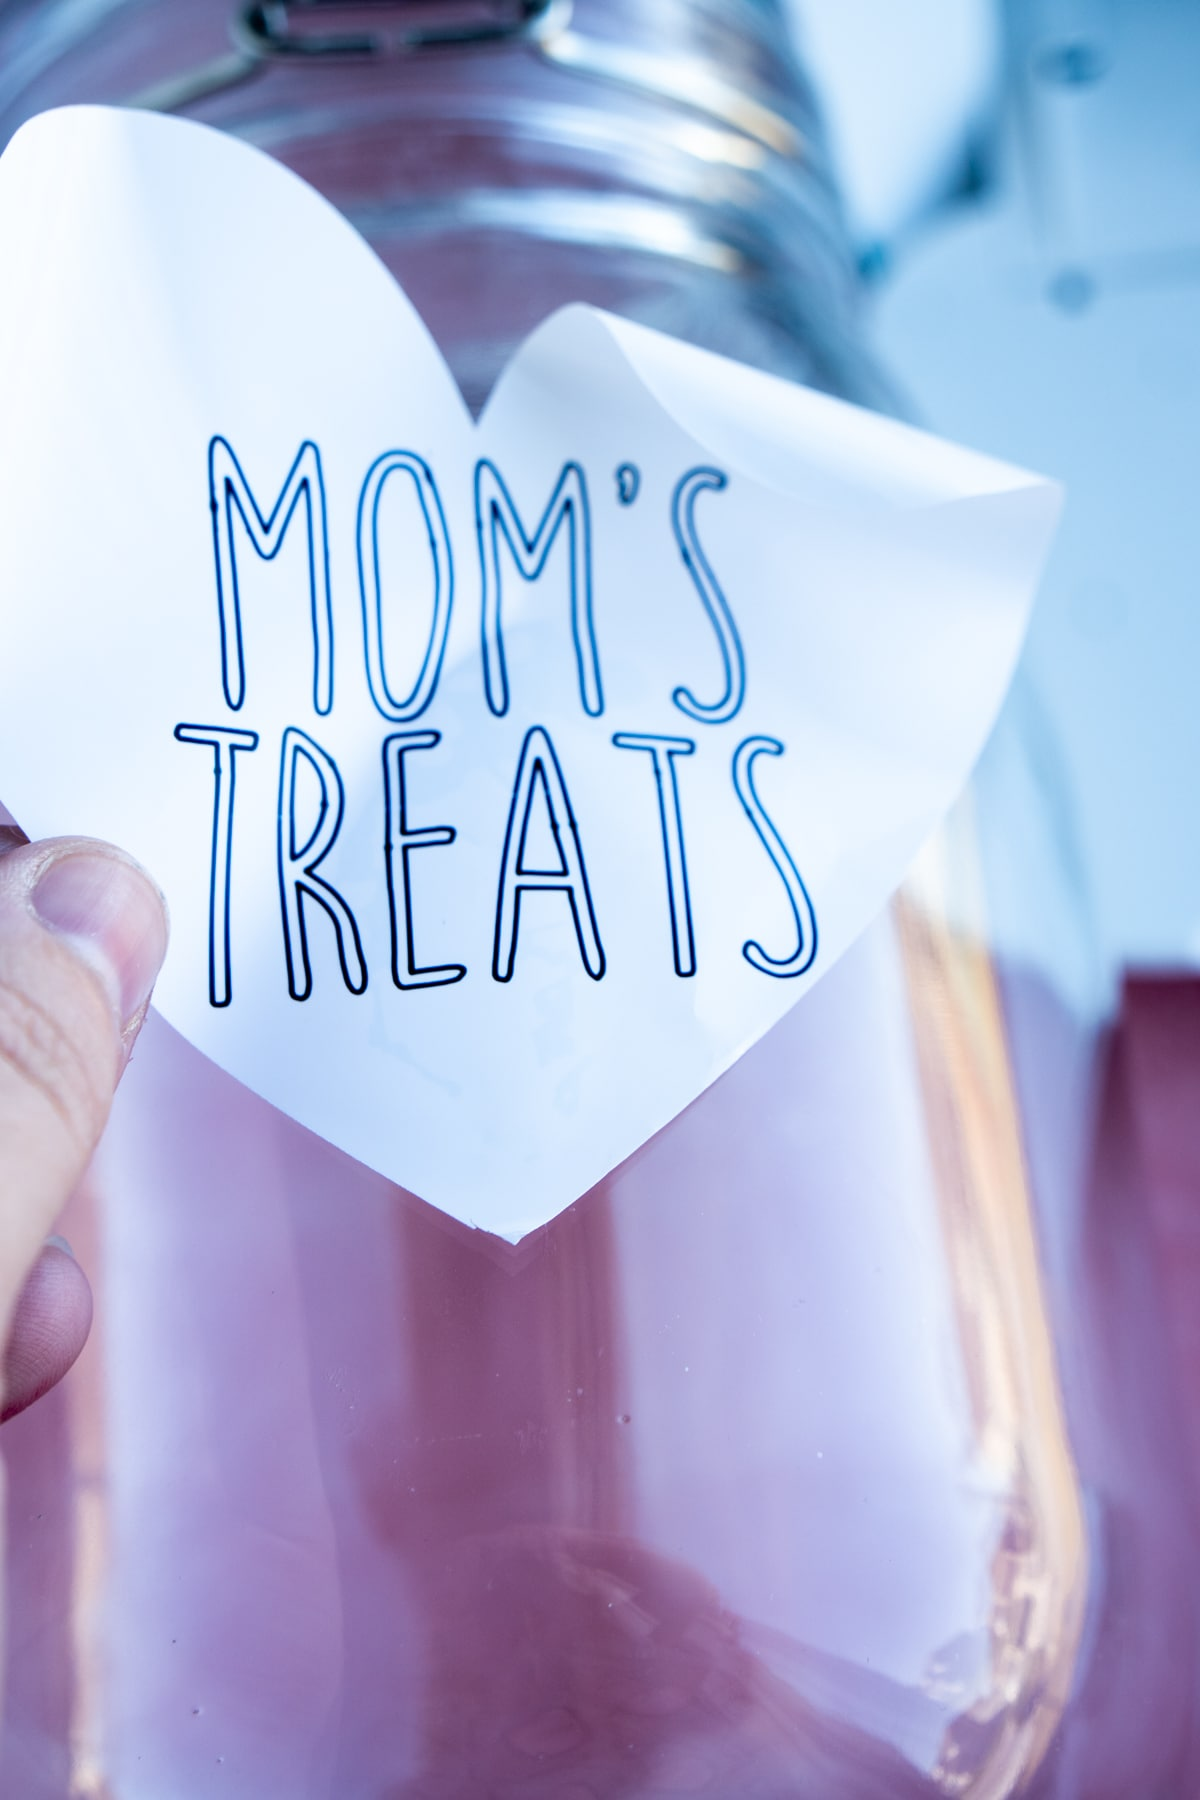 Woman's hand placing a mom's treats label on a jar